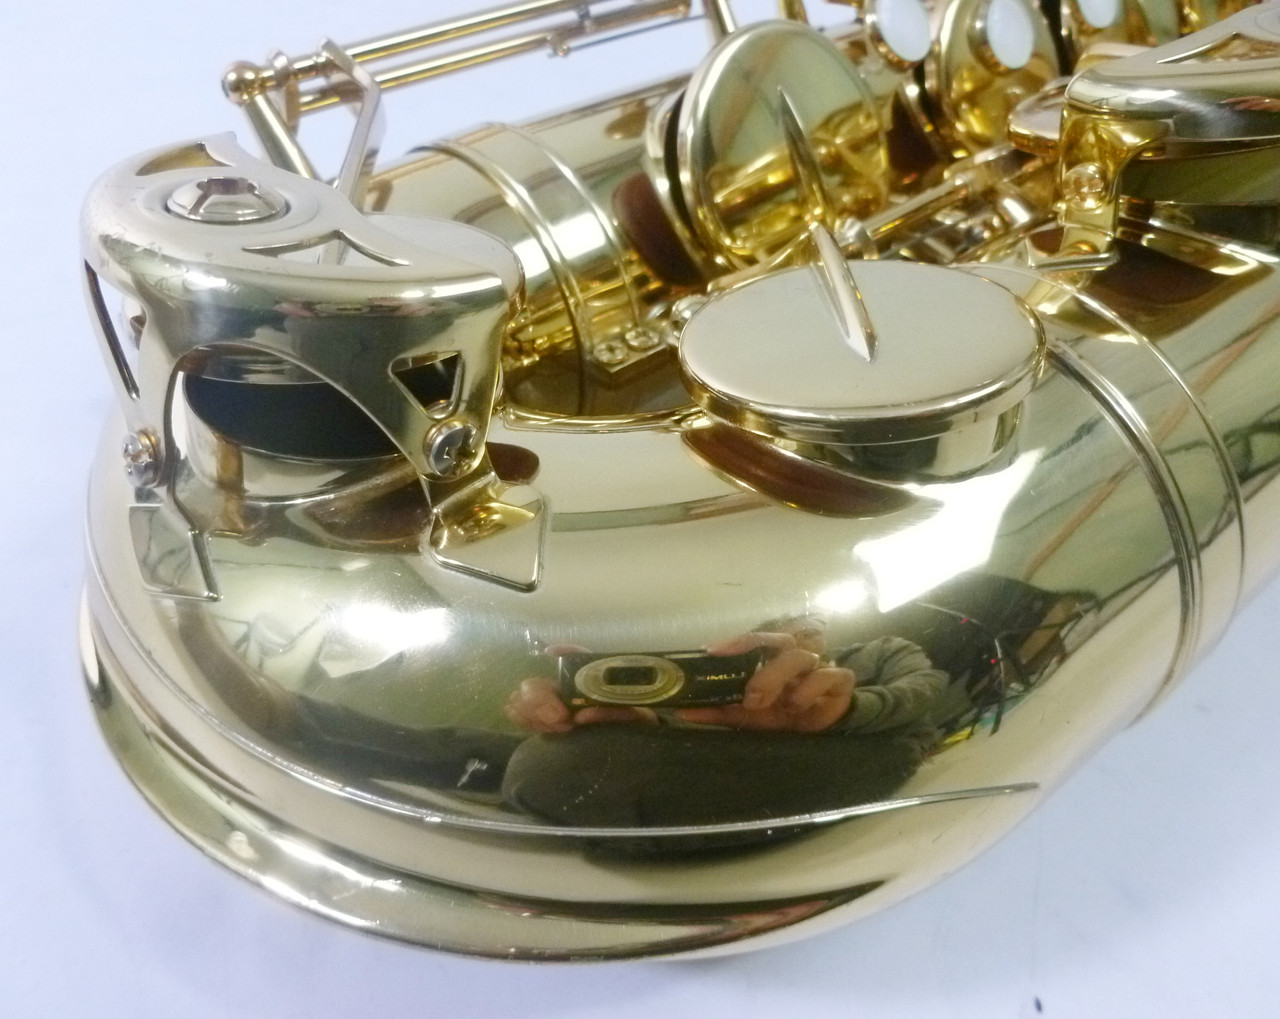 YAMAHA YTS 475 TENOR SAX (MADE IN JAPAN) - REFURBISHED 7